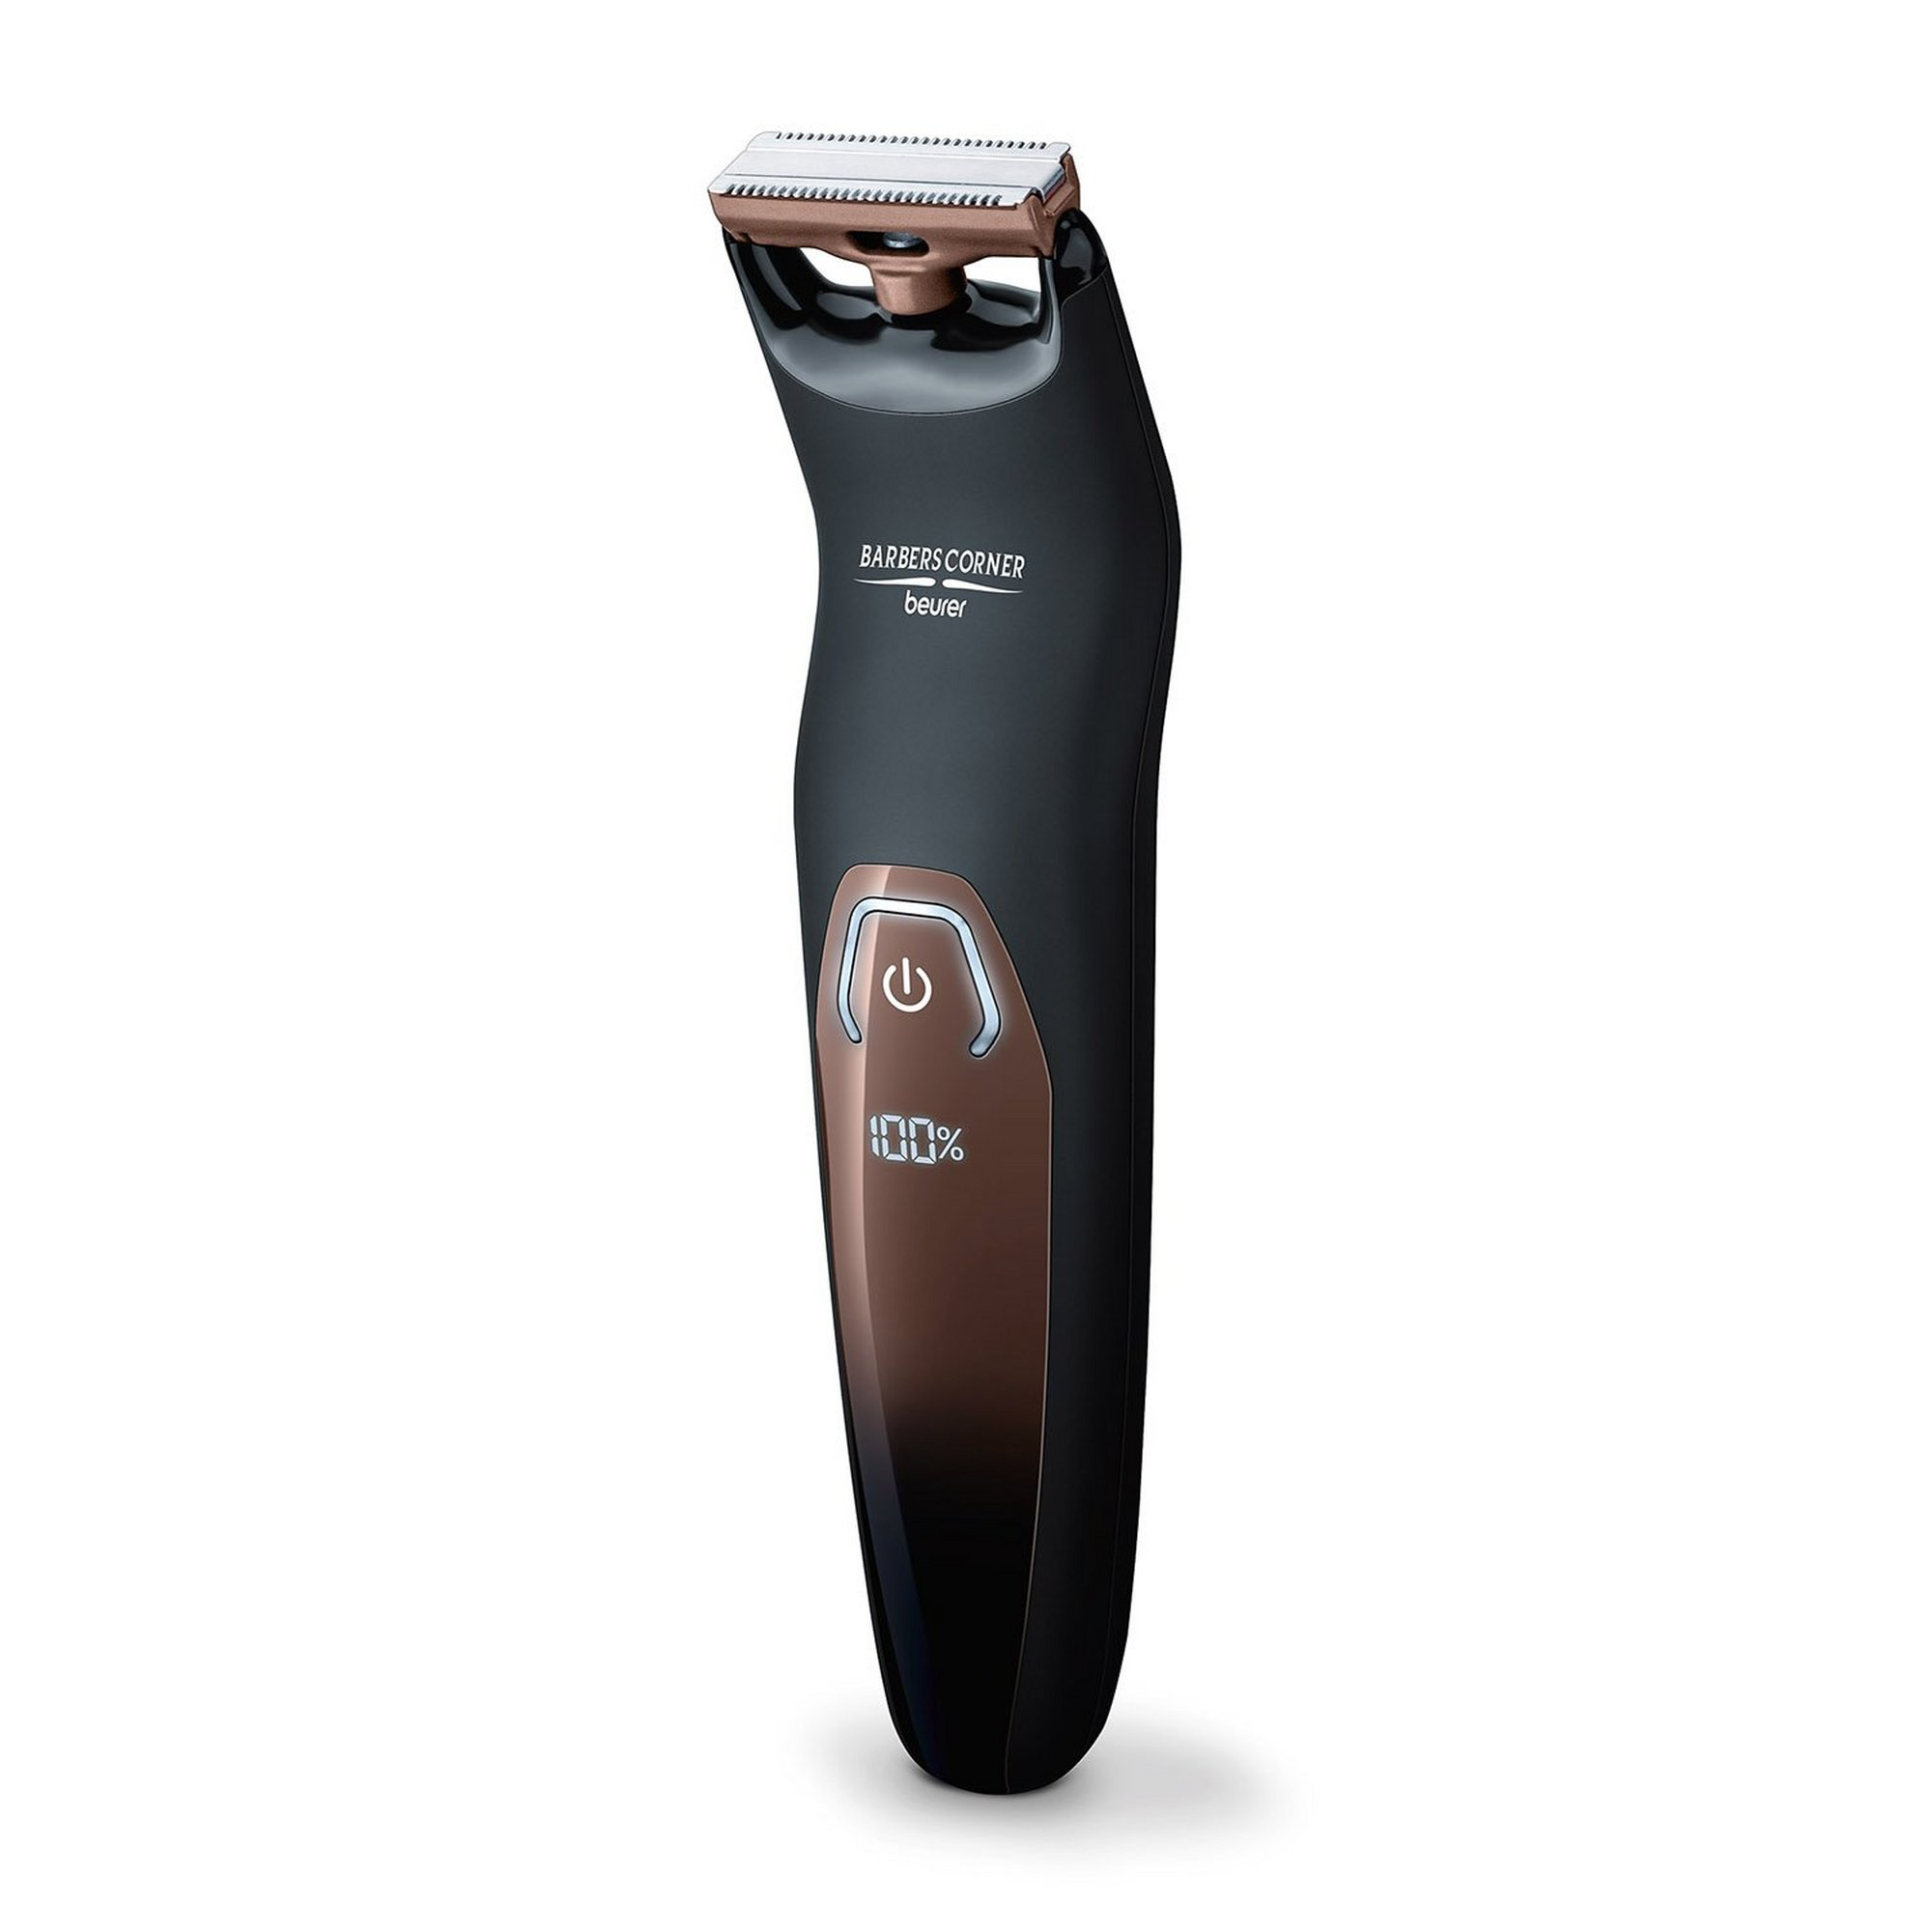 Image of Beurer Mains + Rechargeable Body Groomer